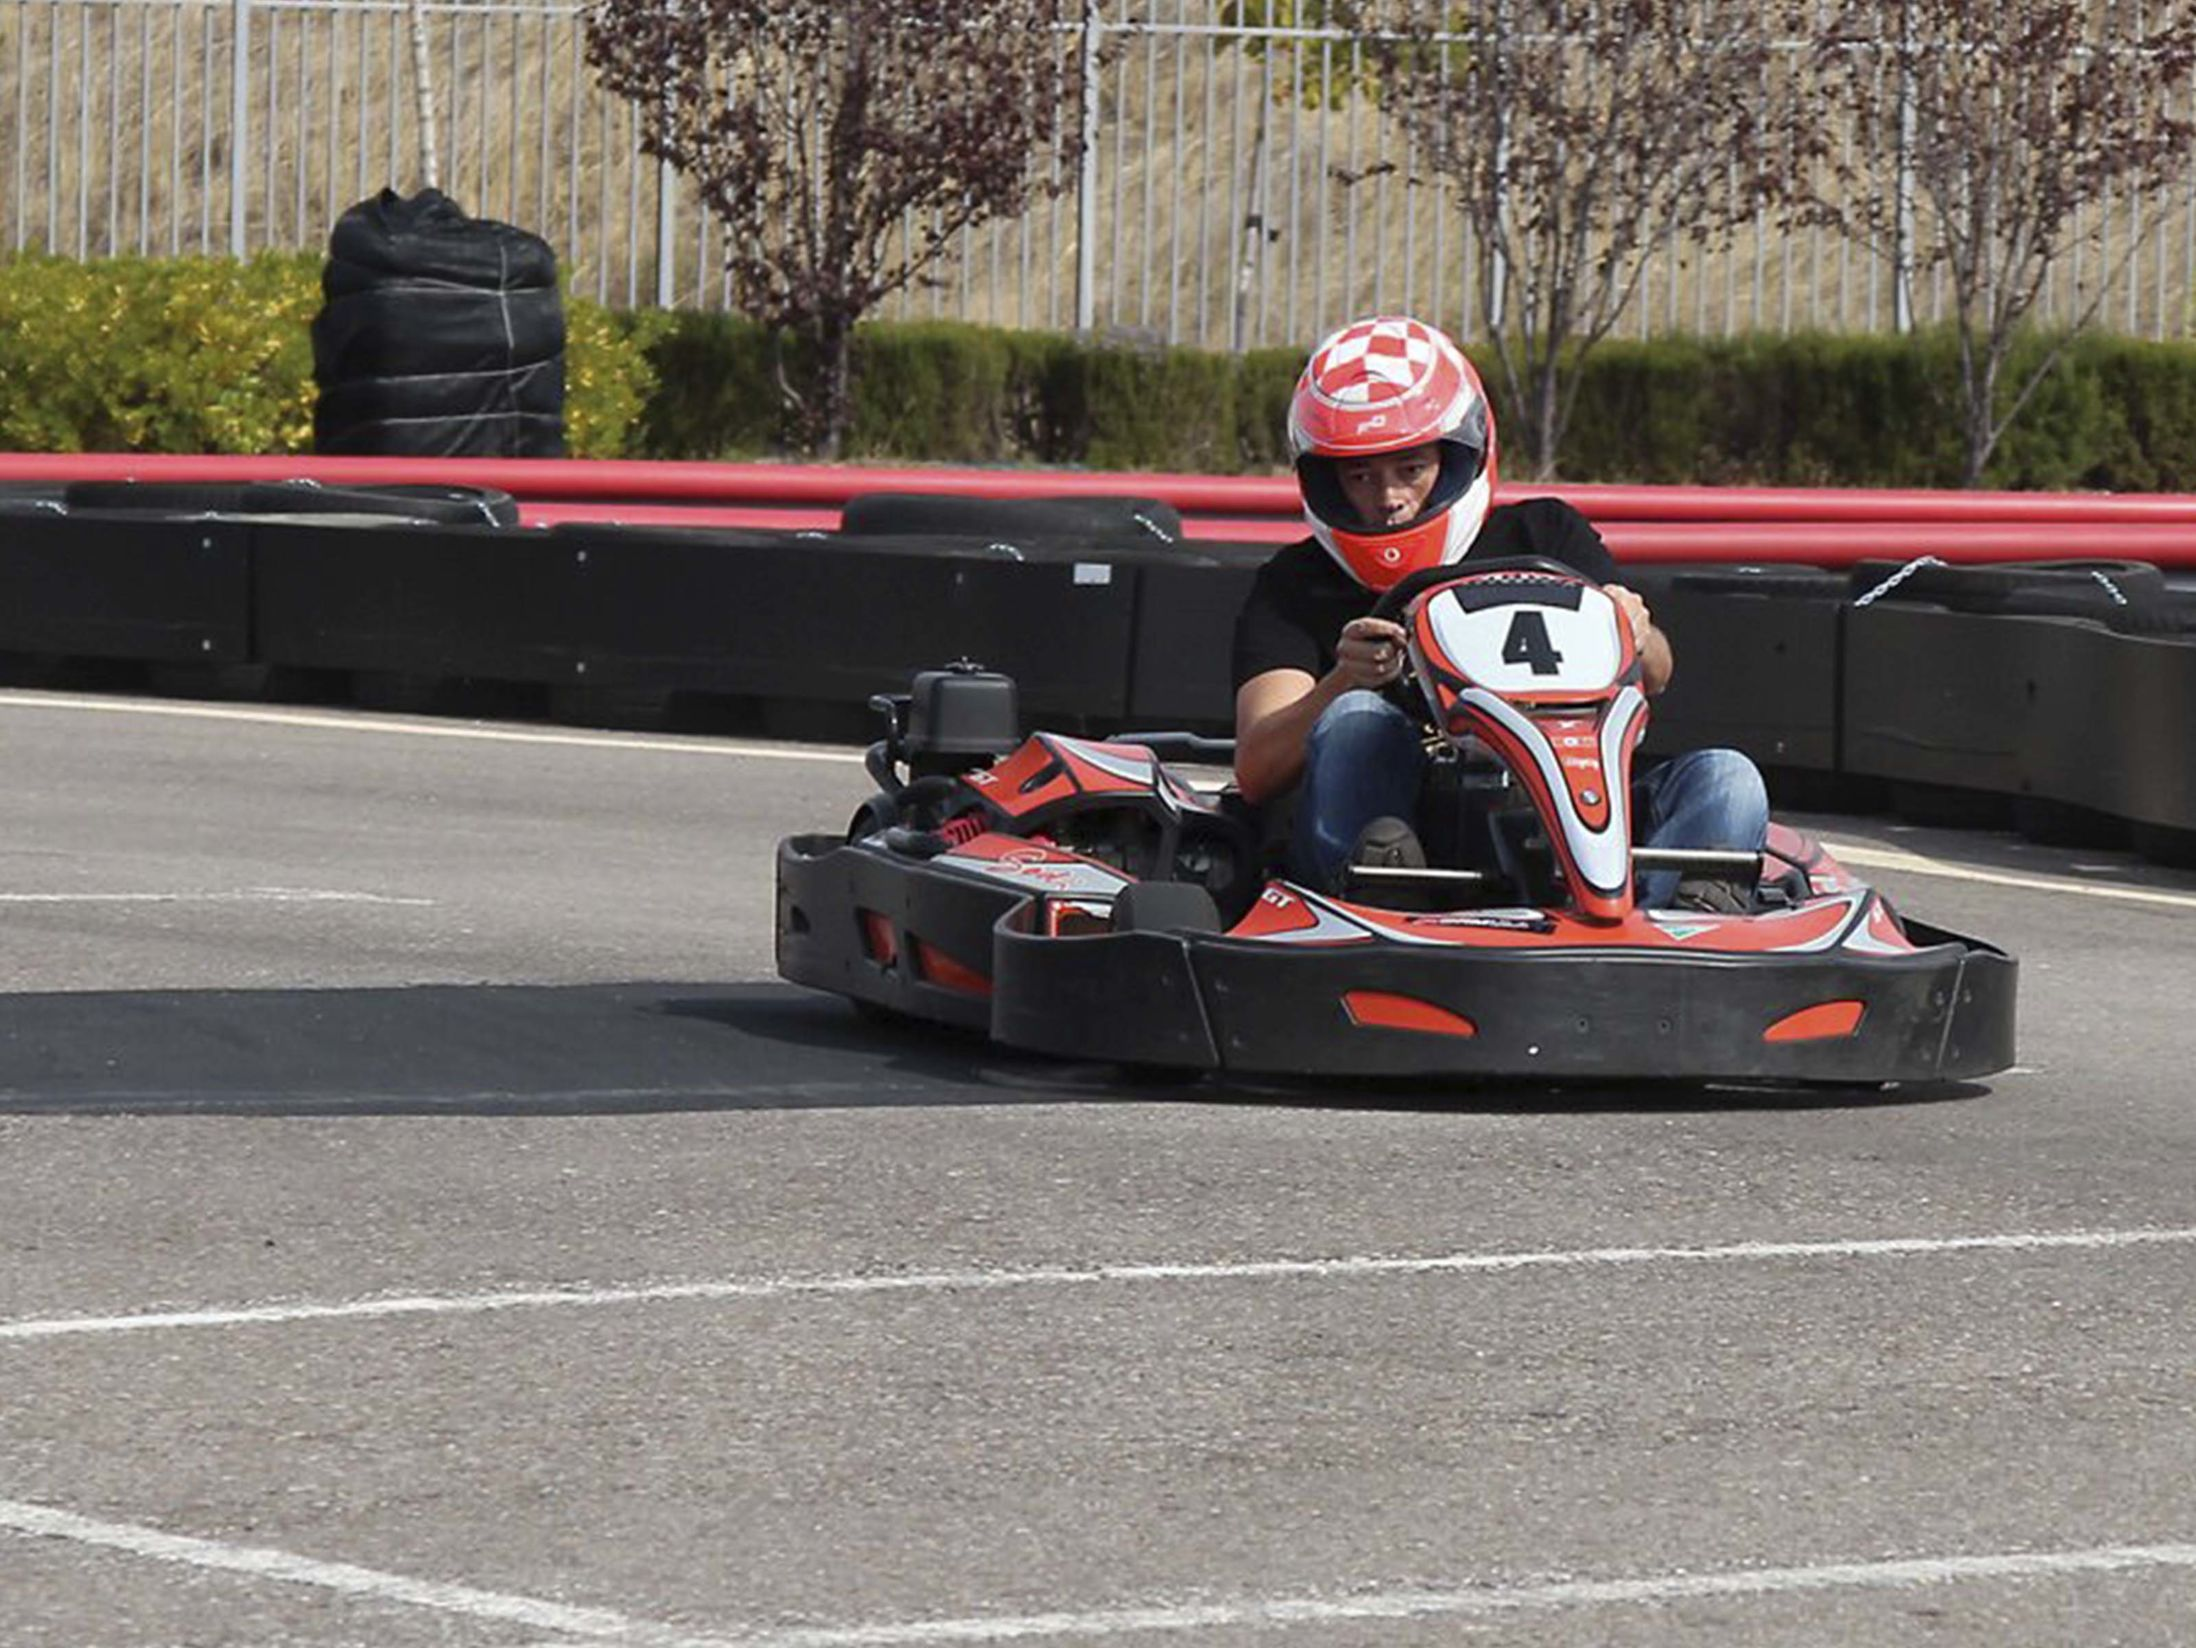 5 Best Corporate Away Days - Go Karting